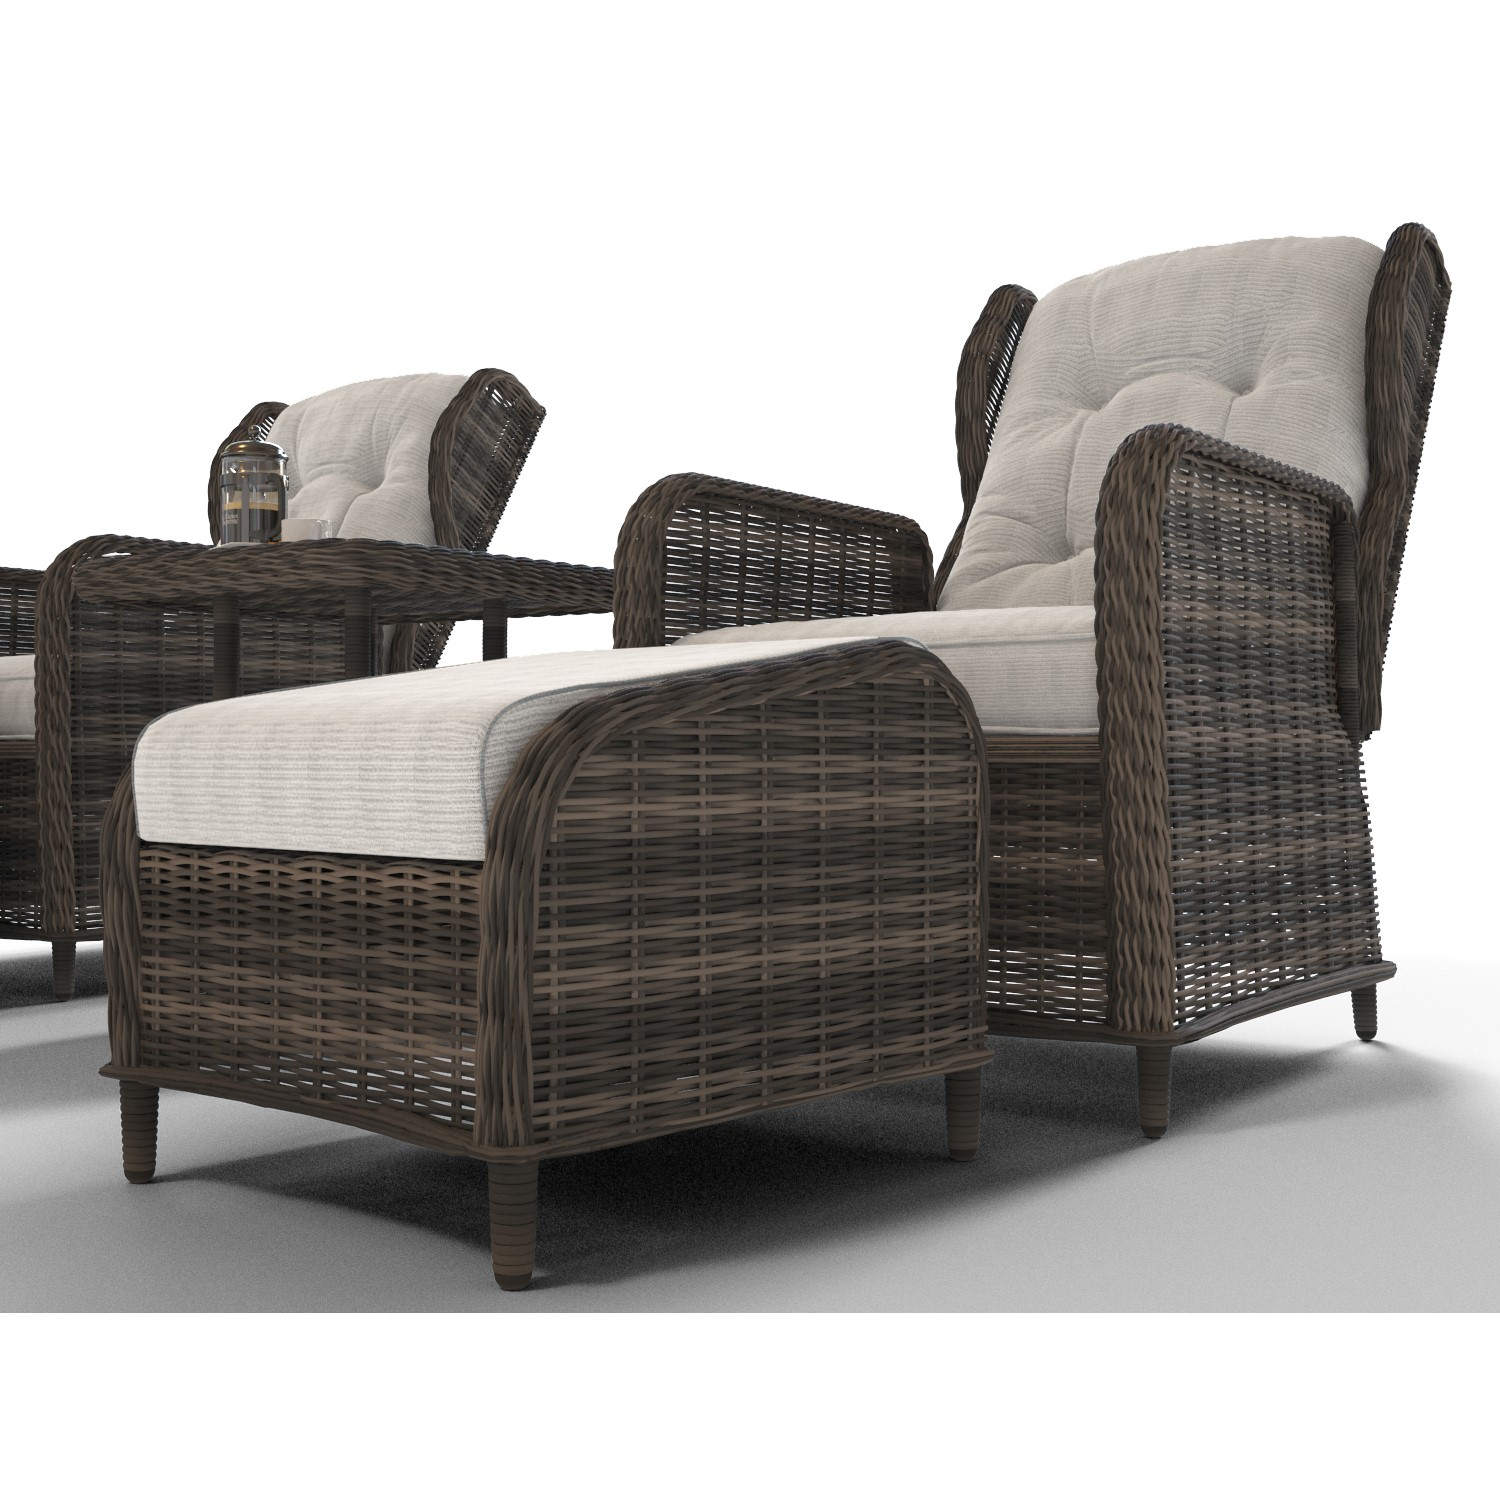 Reclining Rattan Conservatory Set In Brown With Table Footstools Aspen Range Furniture123